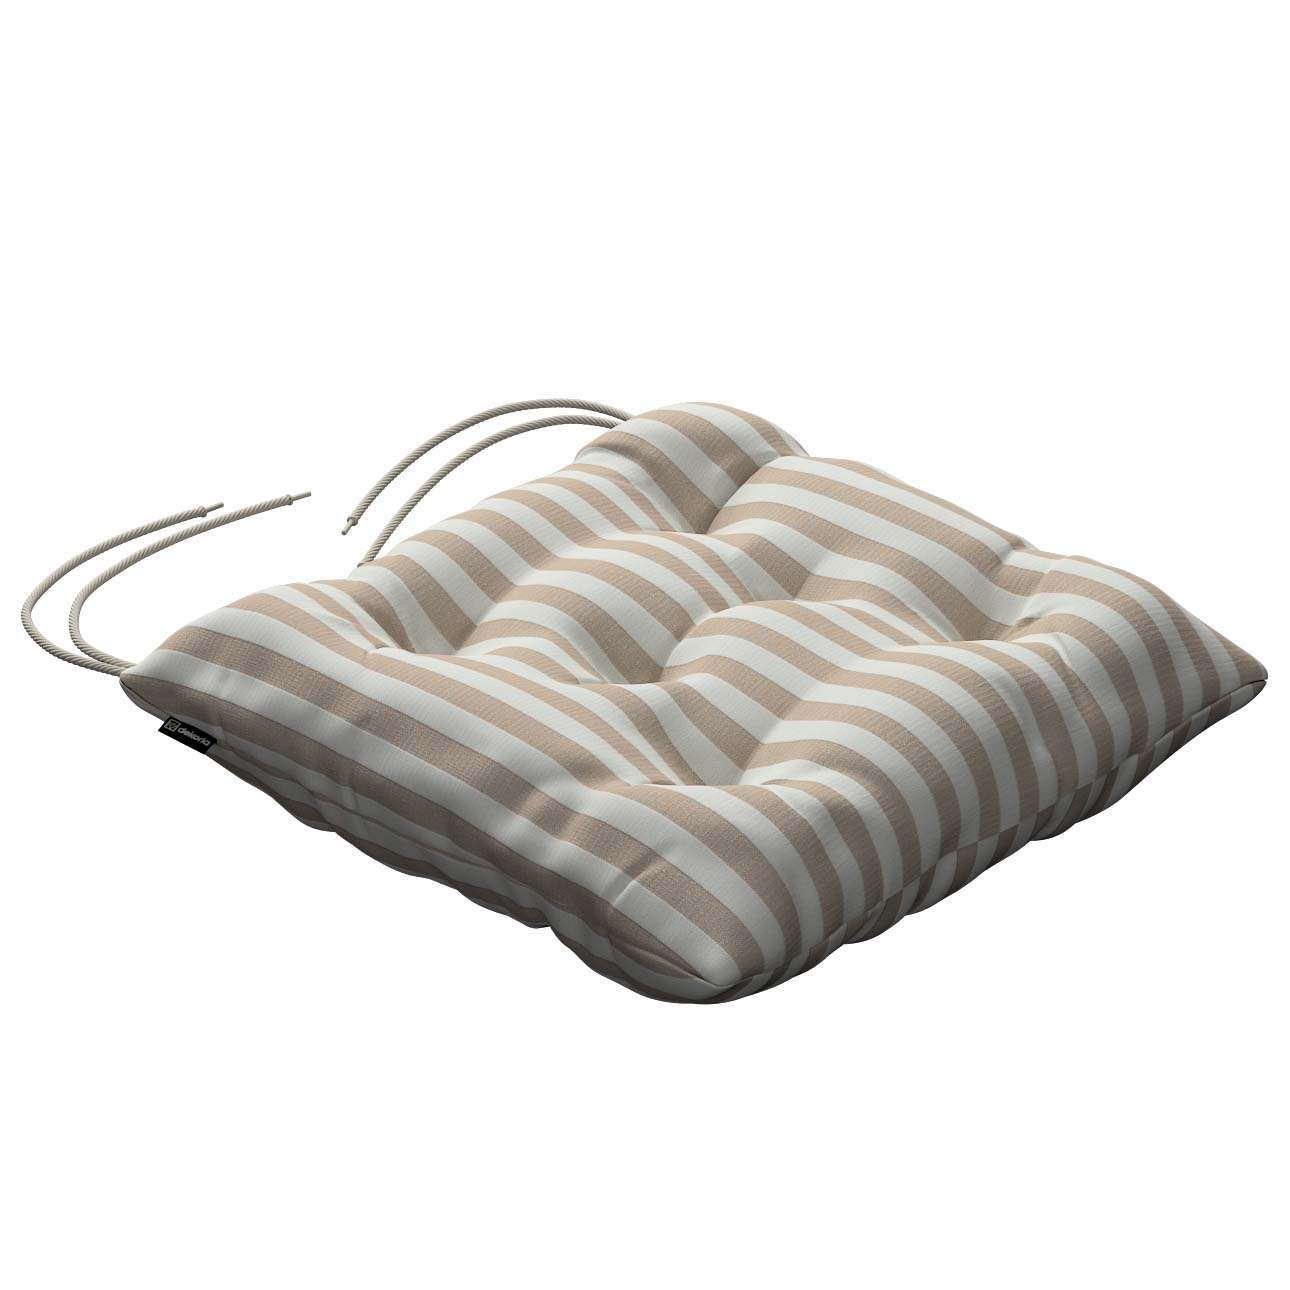 Jack seat pad with ties in collection Quadro, fabric: 136-07